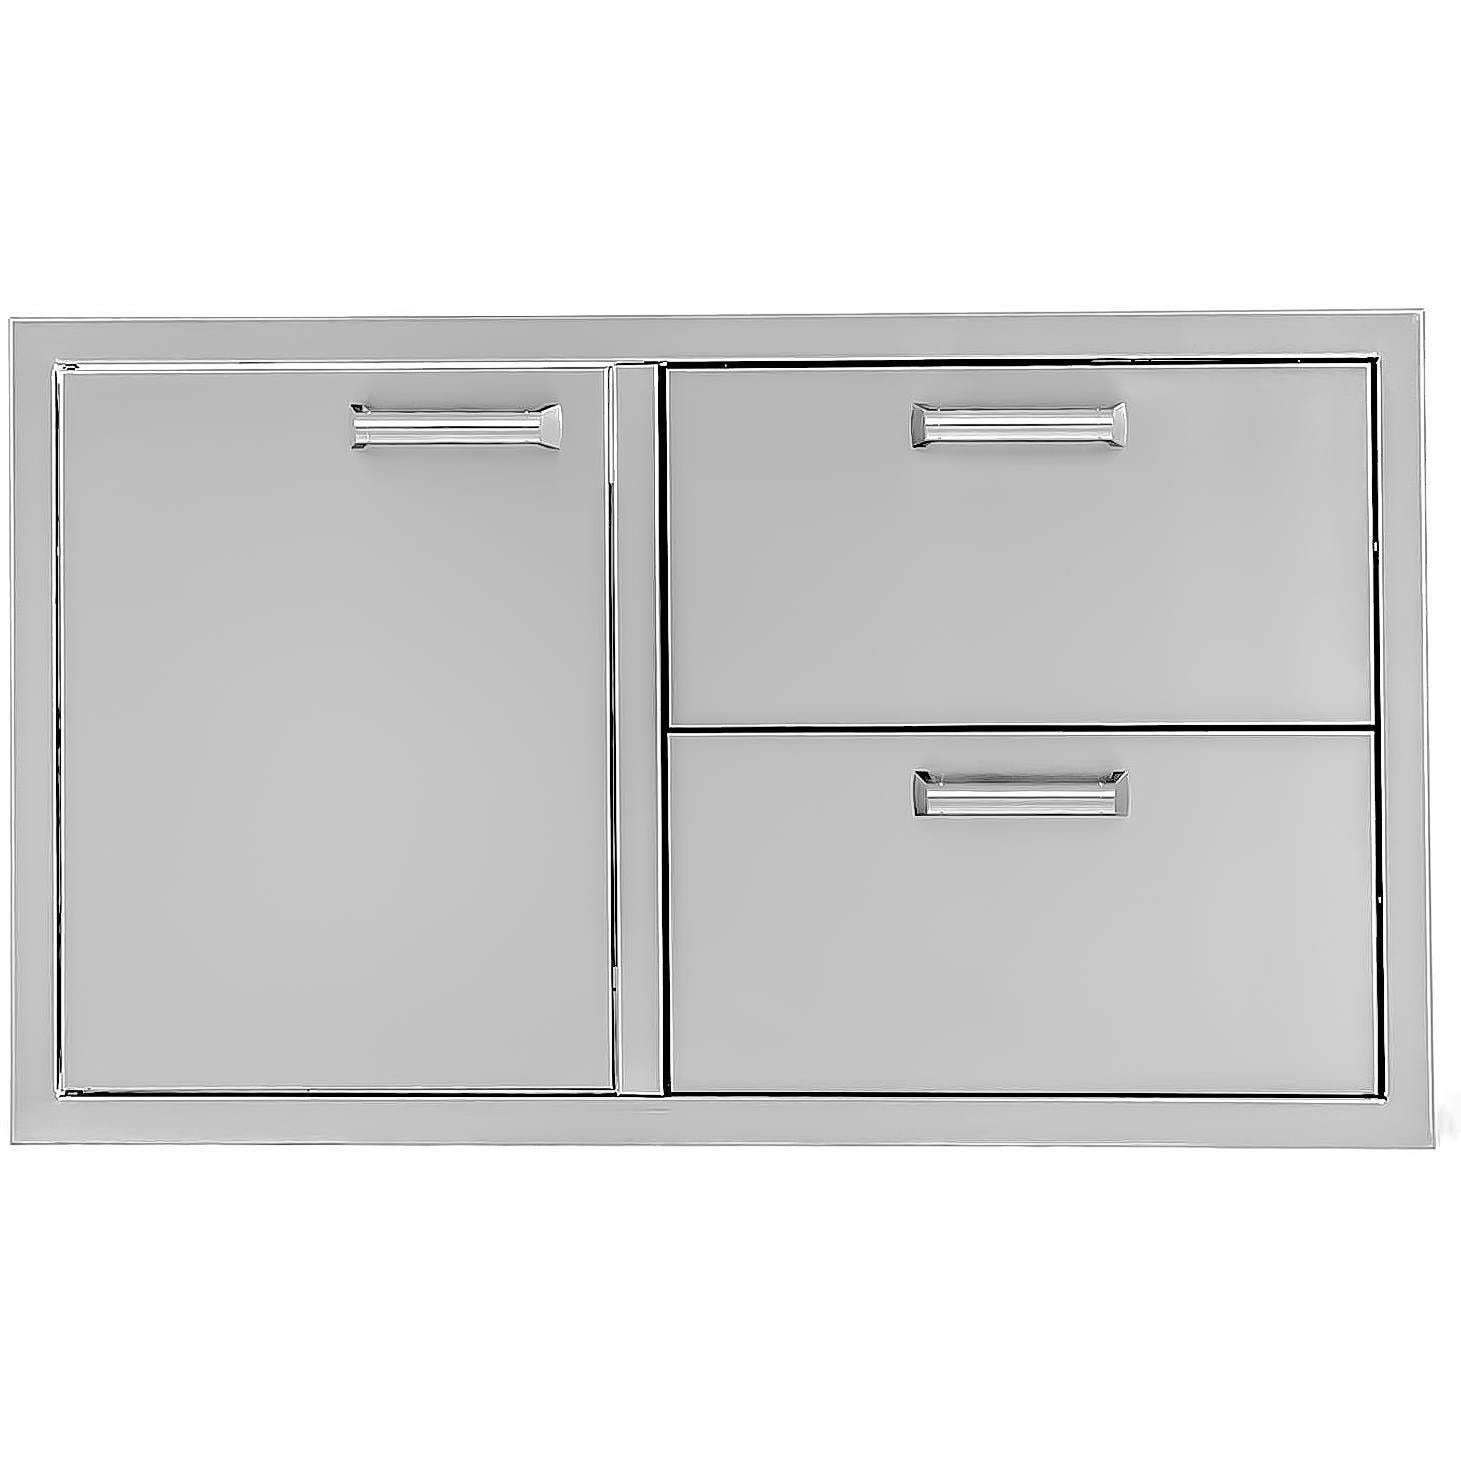 BBQGuys  Sonoma Series 36 inch Stainless Steel Left-Hinged Access Door and Double Drawer Combo - BBQ-350H-COMBO36